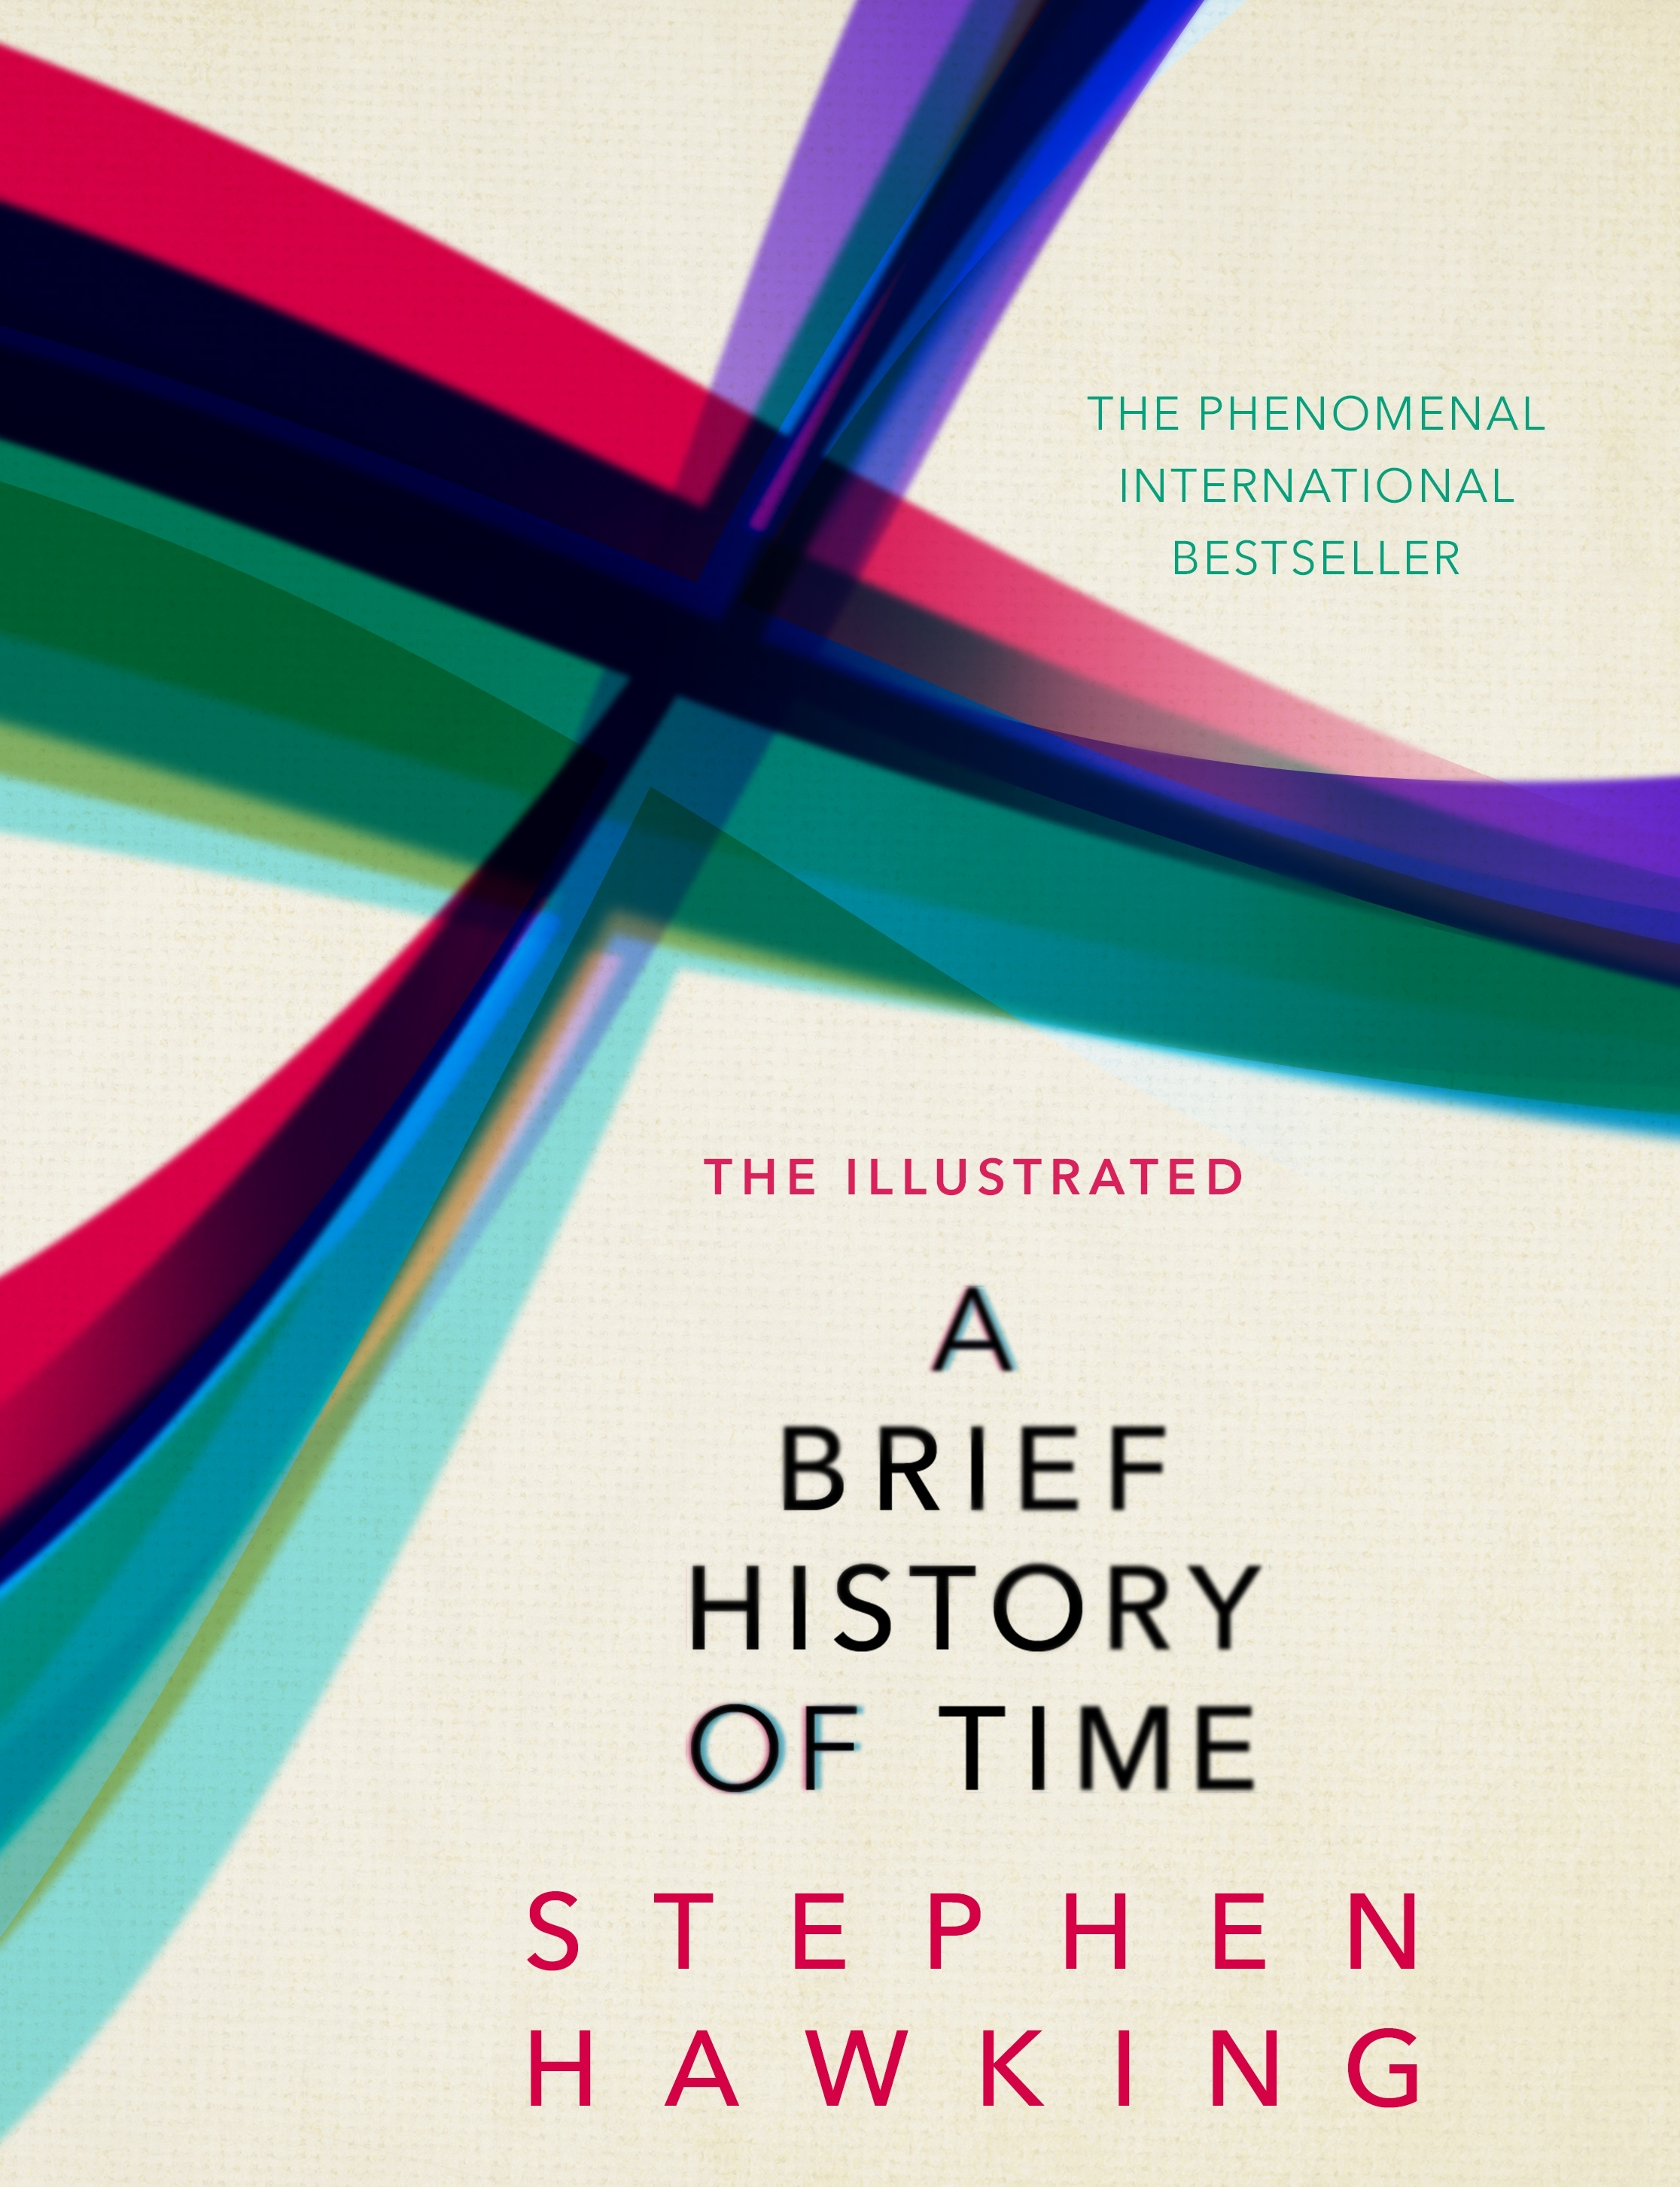 The Illustrated Brief History Of Time by Stephen Hawking, ISBN: 9780593077184